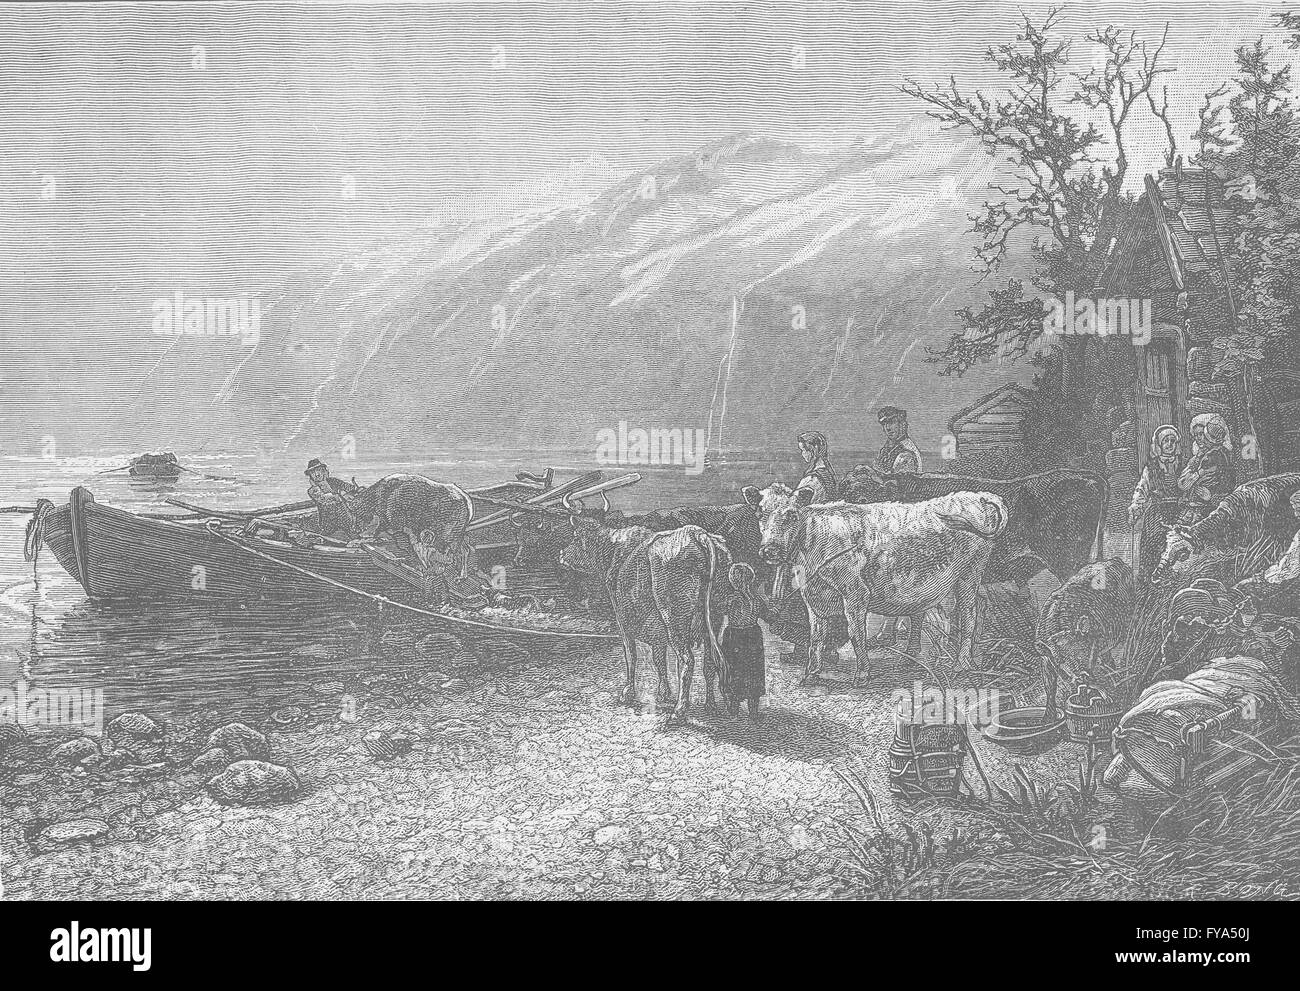 NORWAY: Ferry at a Norwegian Fjord, antique print 1894 - Stock Image